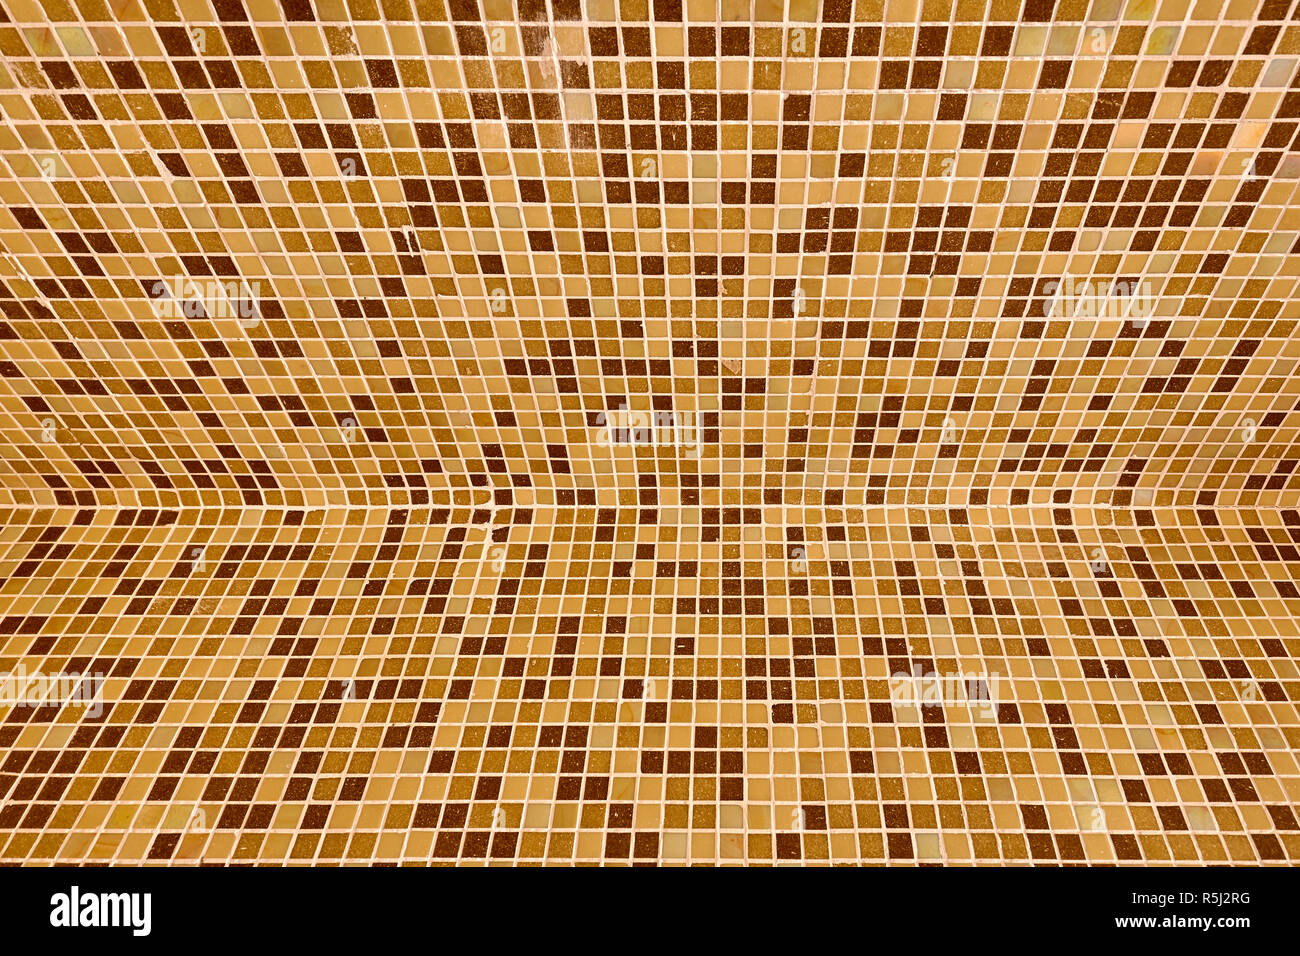 tile in beige tones of the background - Stock Image